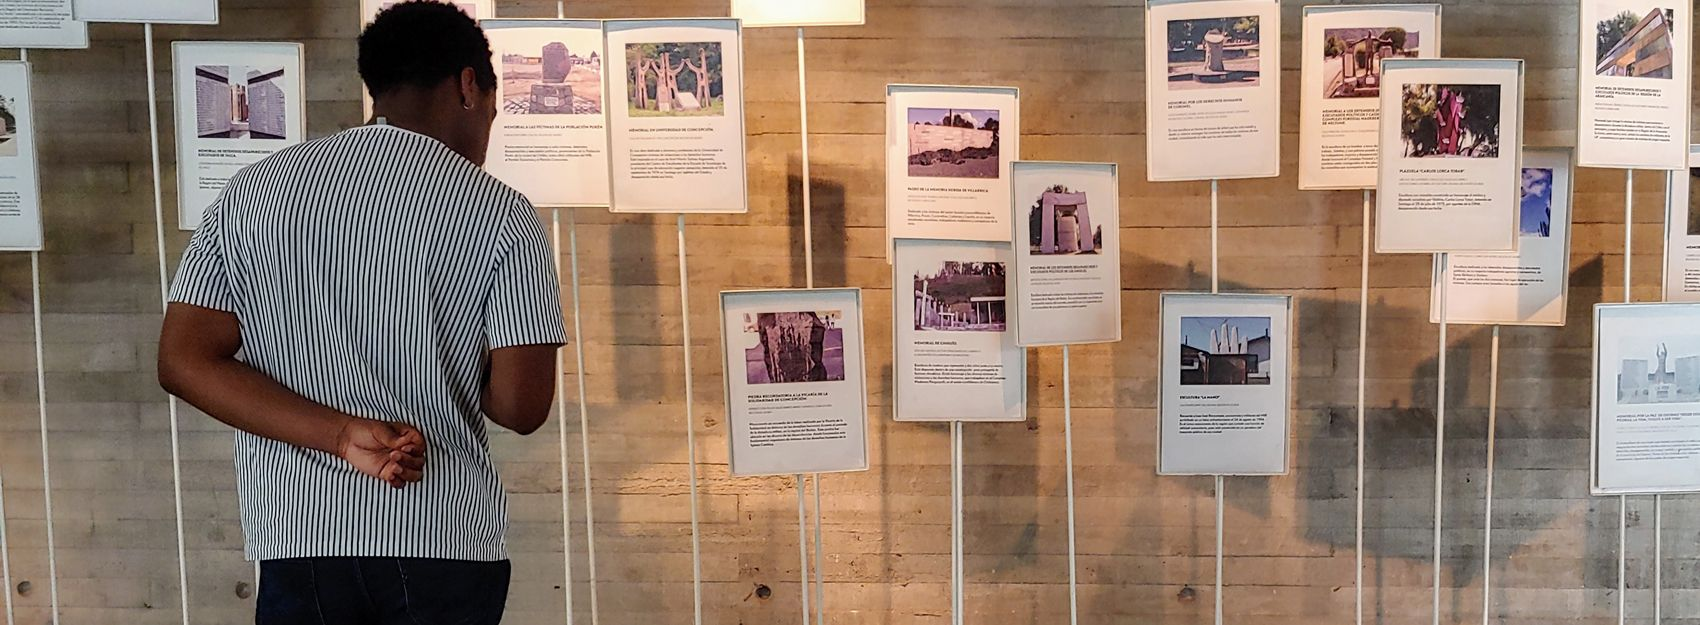 student reading museum display in chile